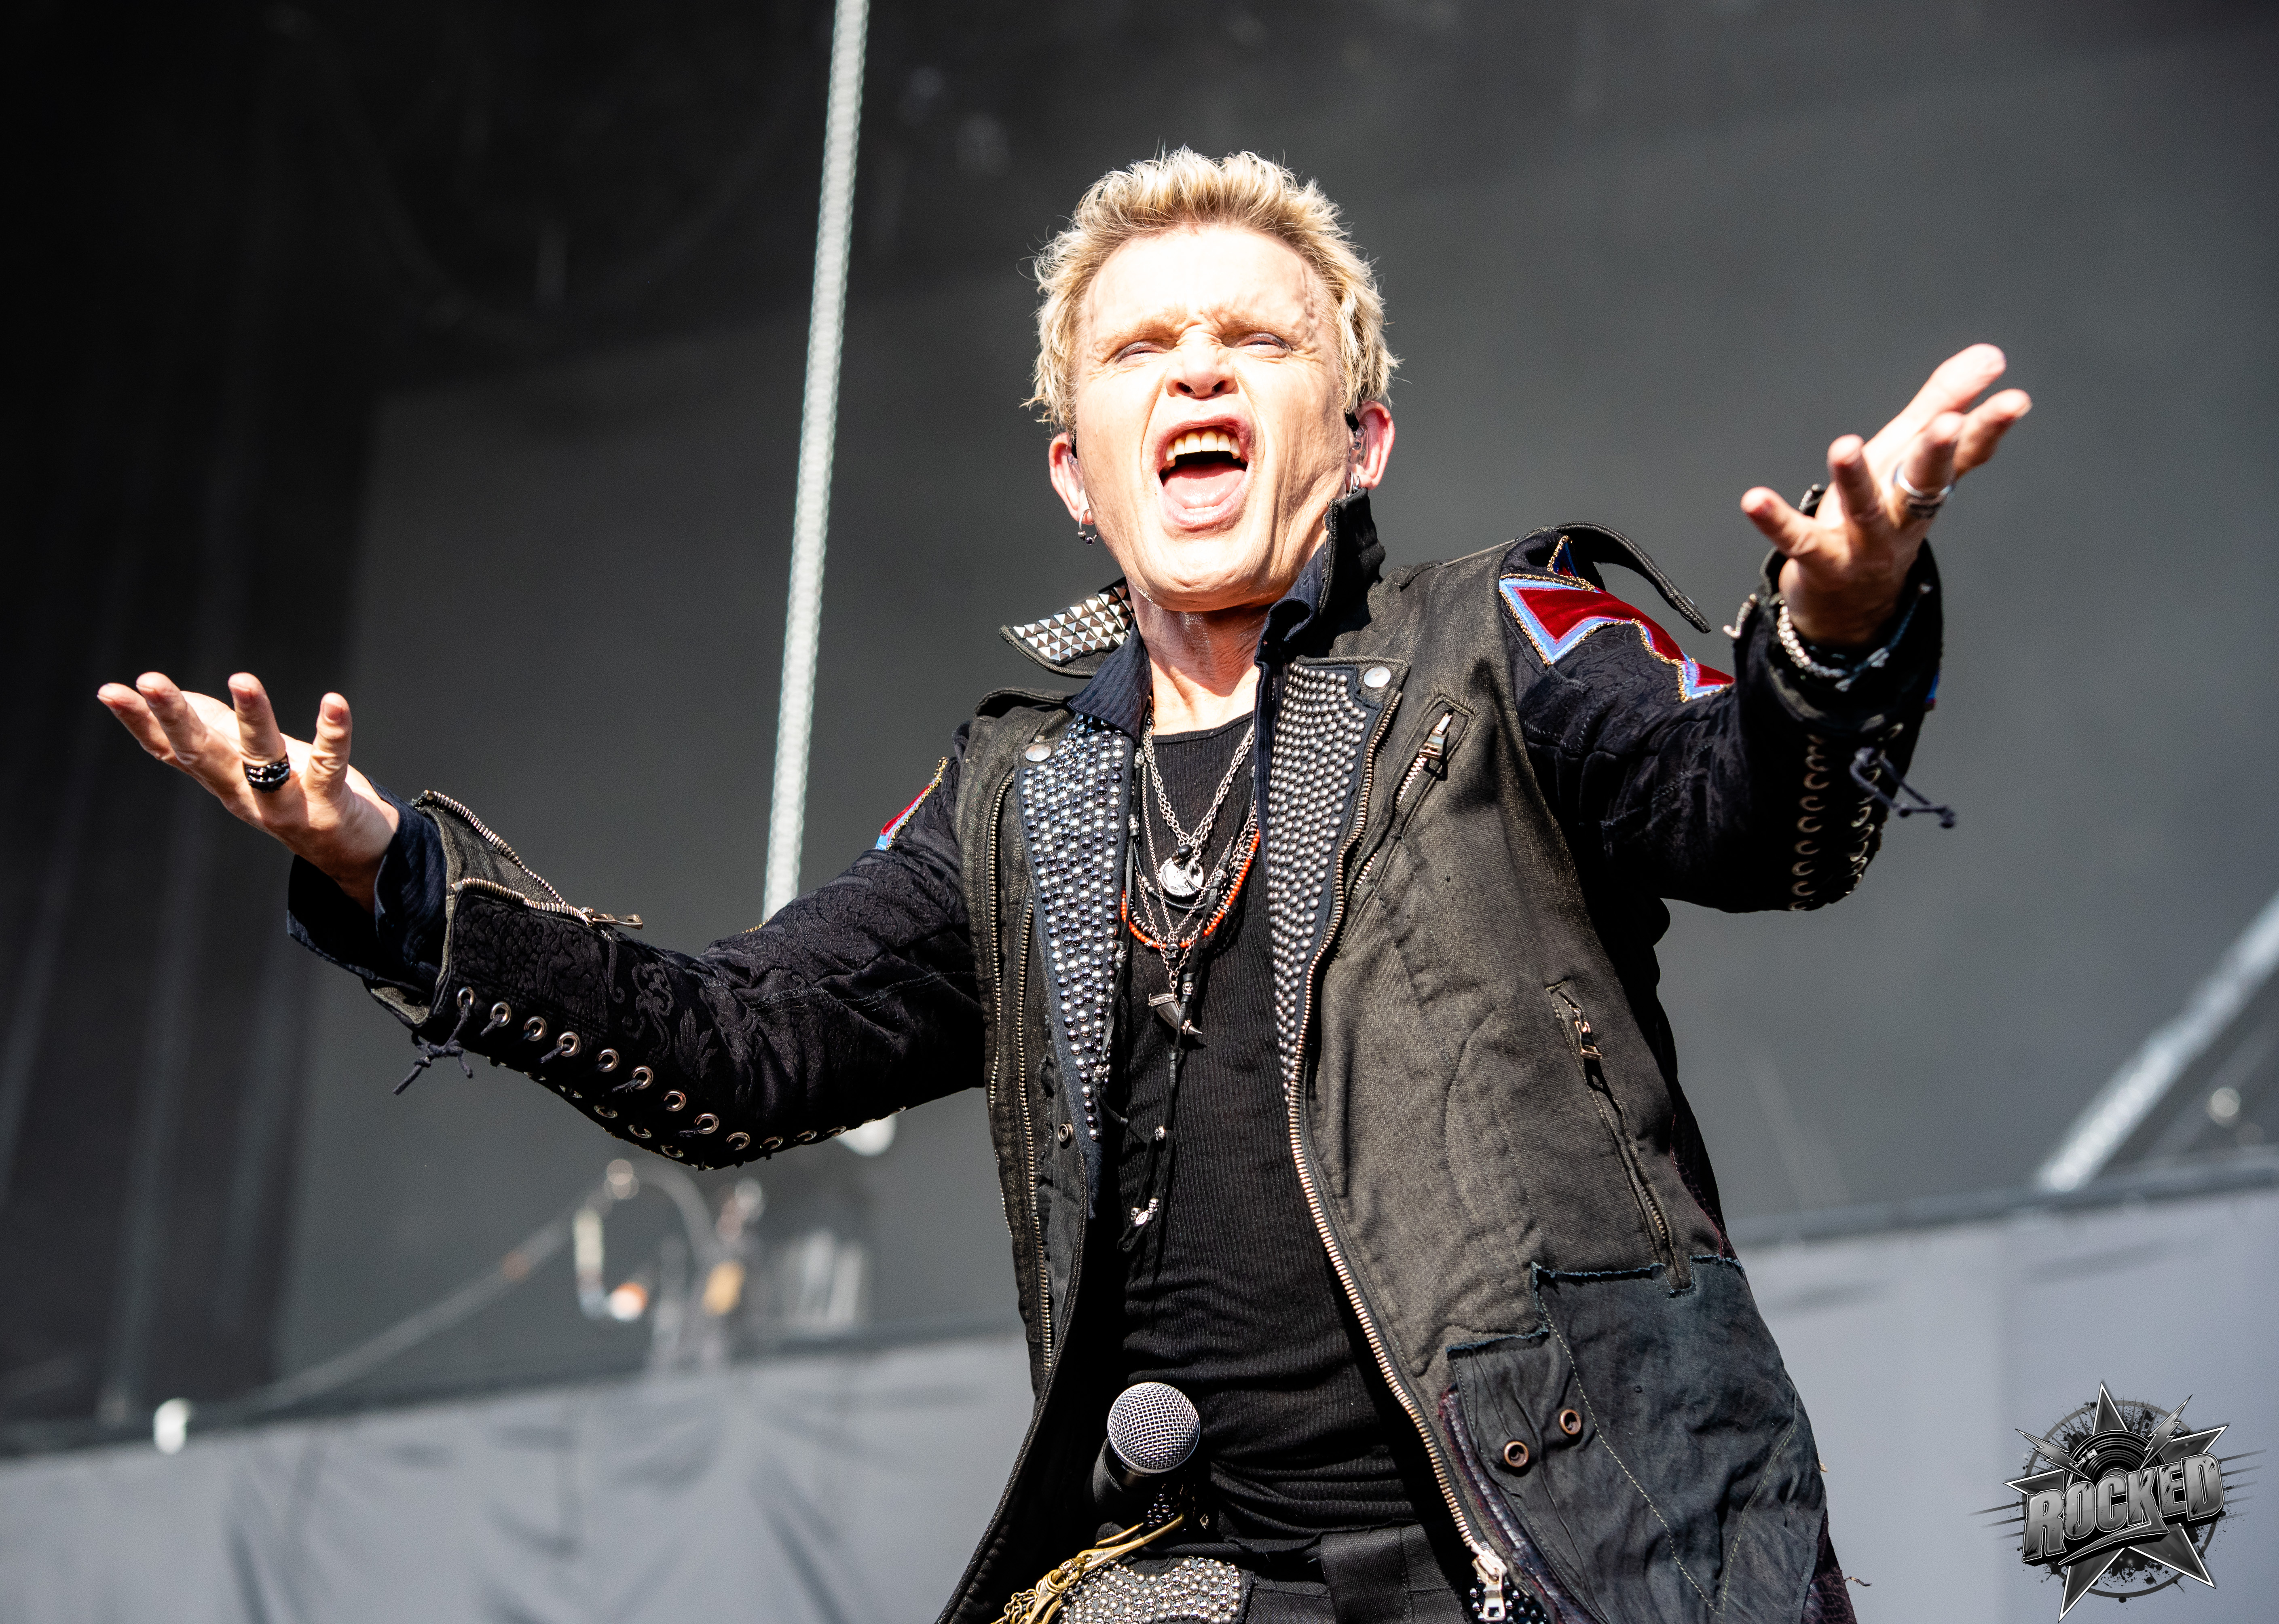 photos billy idol at welcome to rockville in jacksonville fl 4 29 2018 rocked. Black Bedroom Furniture Sets. Home Design Ideas